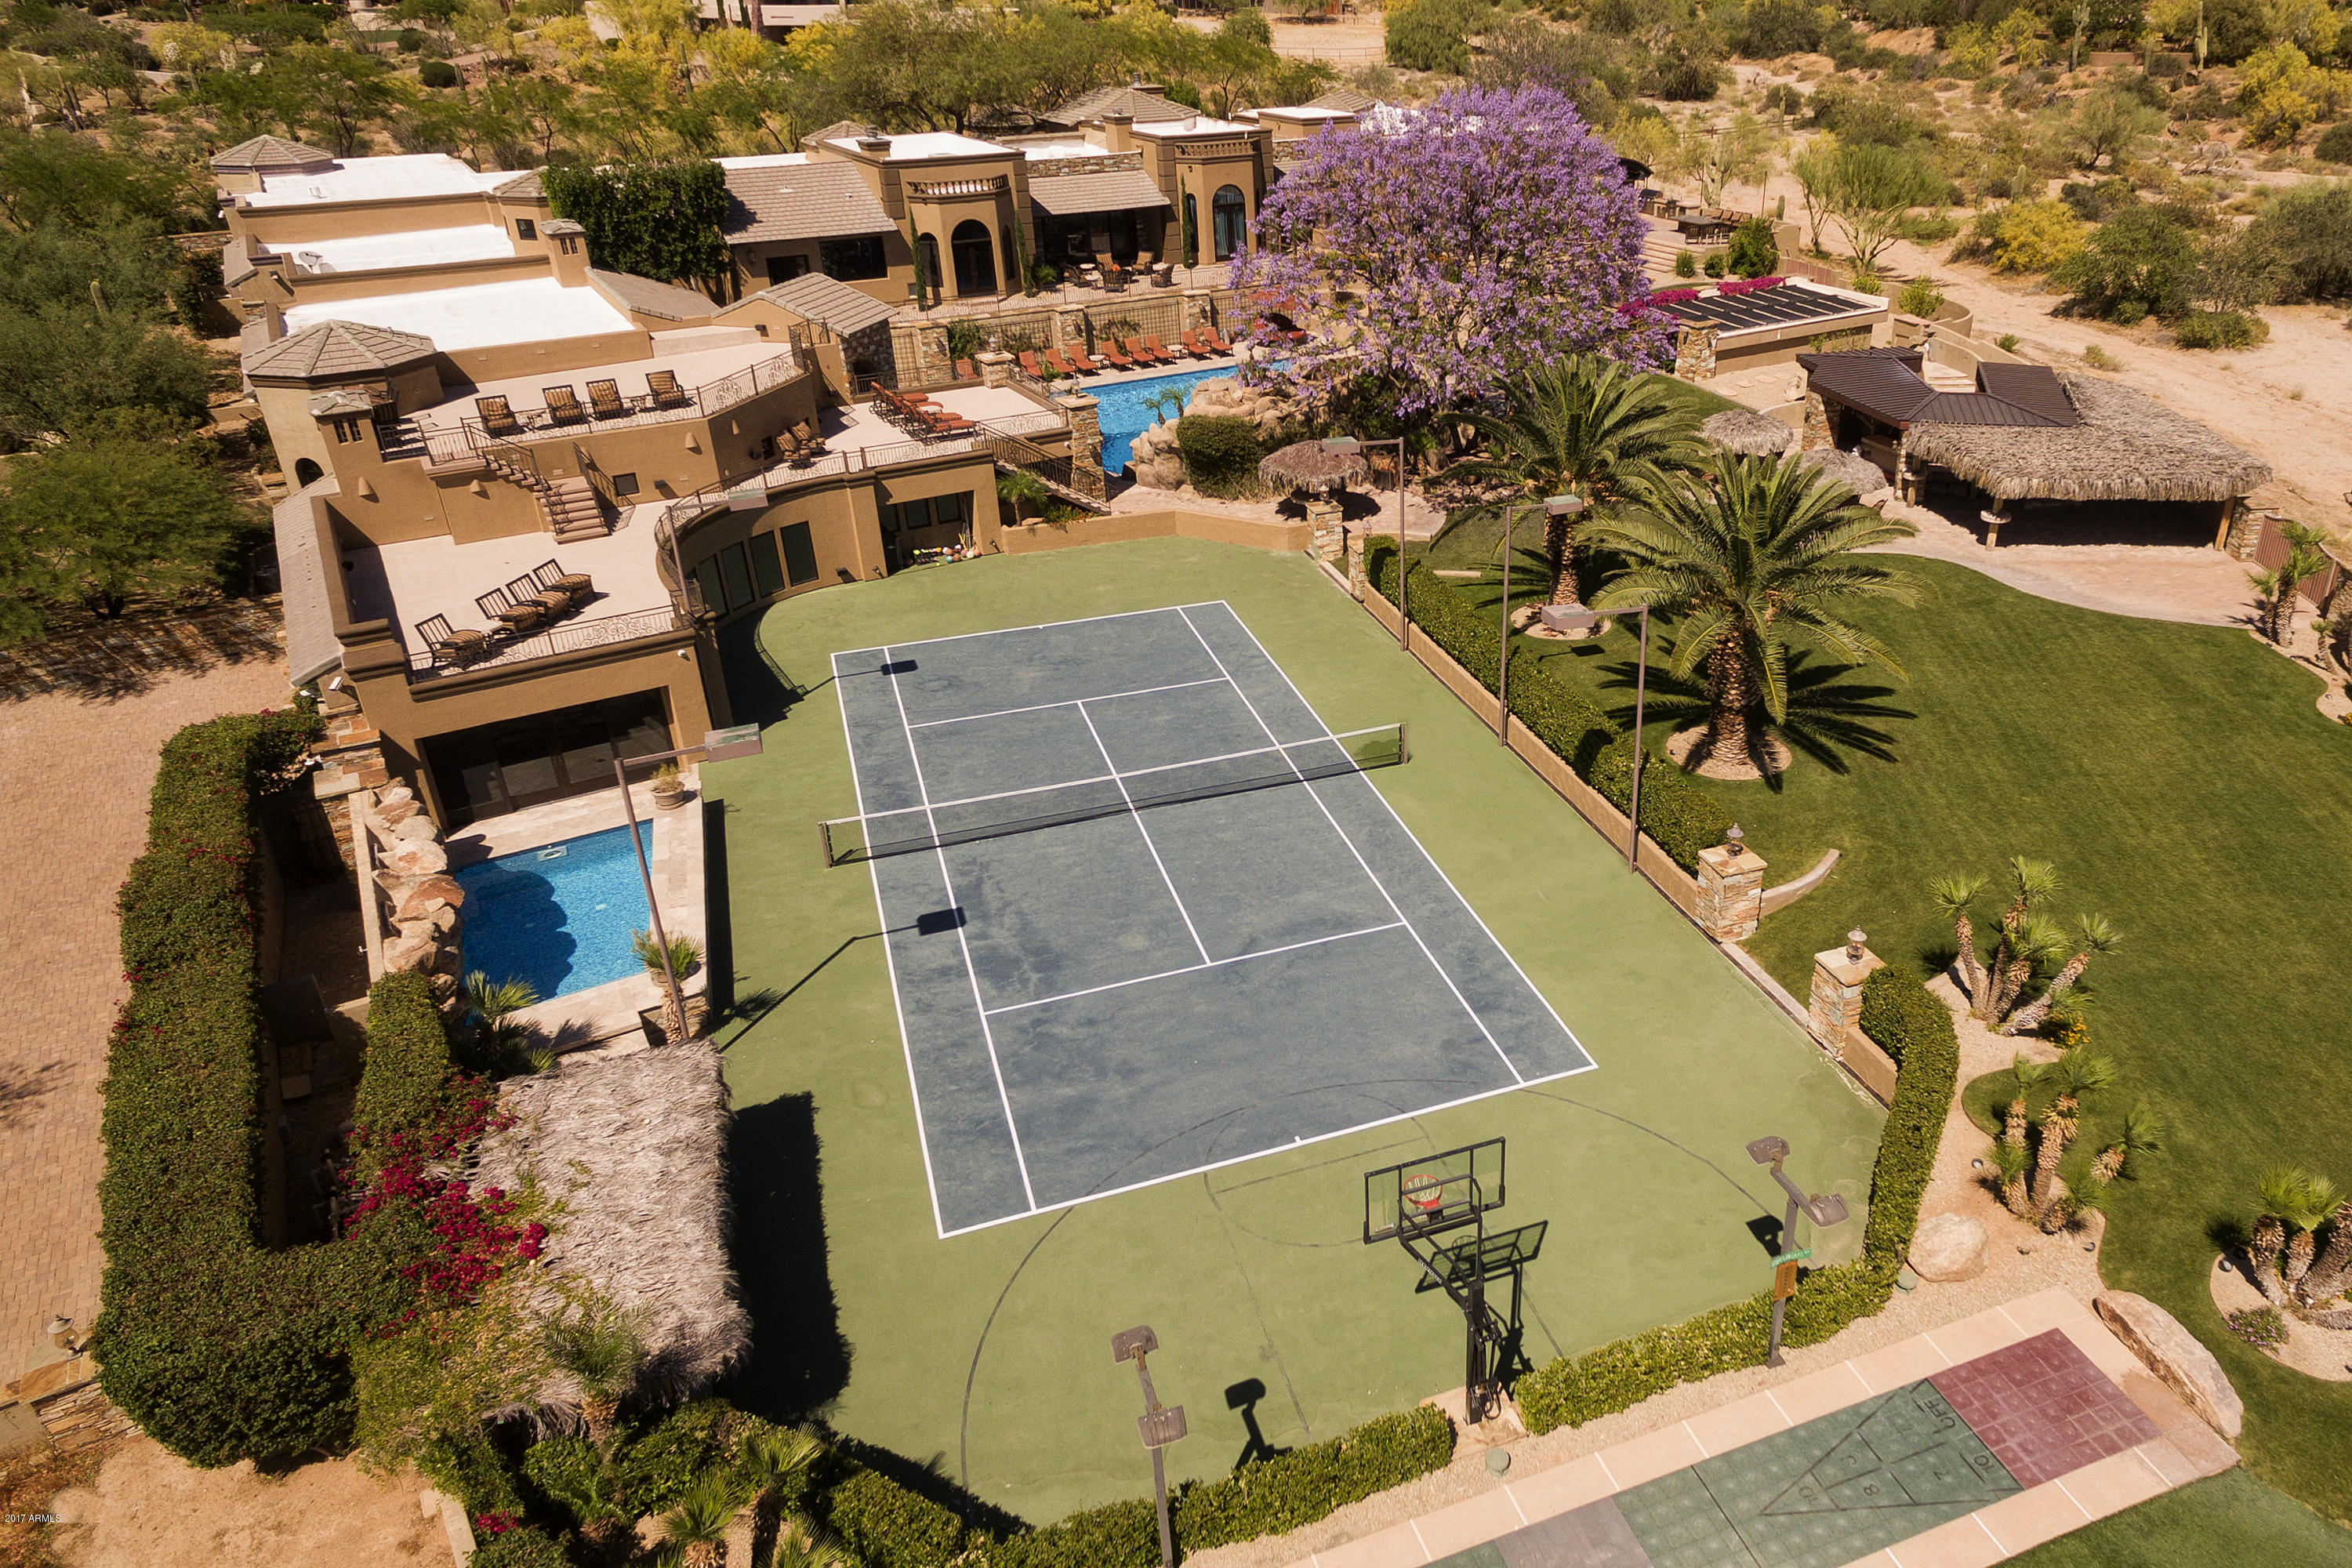 MLS 5617332 23035 N Church Road, Scottsdale, AZ 85255 Scottsdale AZ Tennis Court